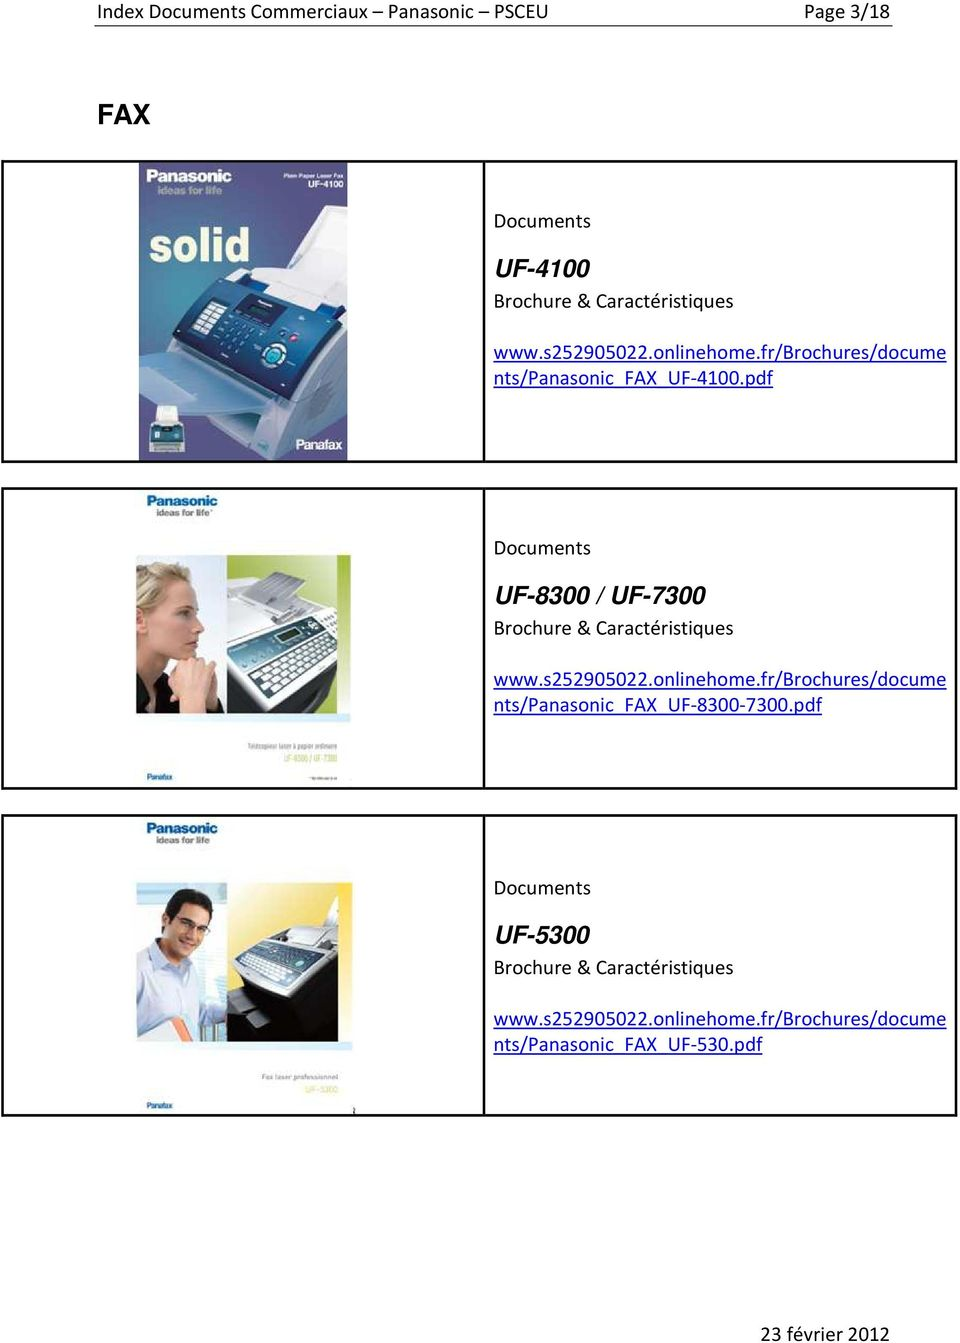 pdf Documents UF-8300 / UF-7300 Brochure & Caractéristiques www.s252905022.onlinehome.